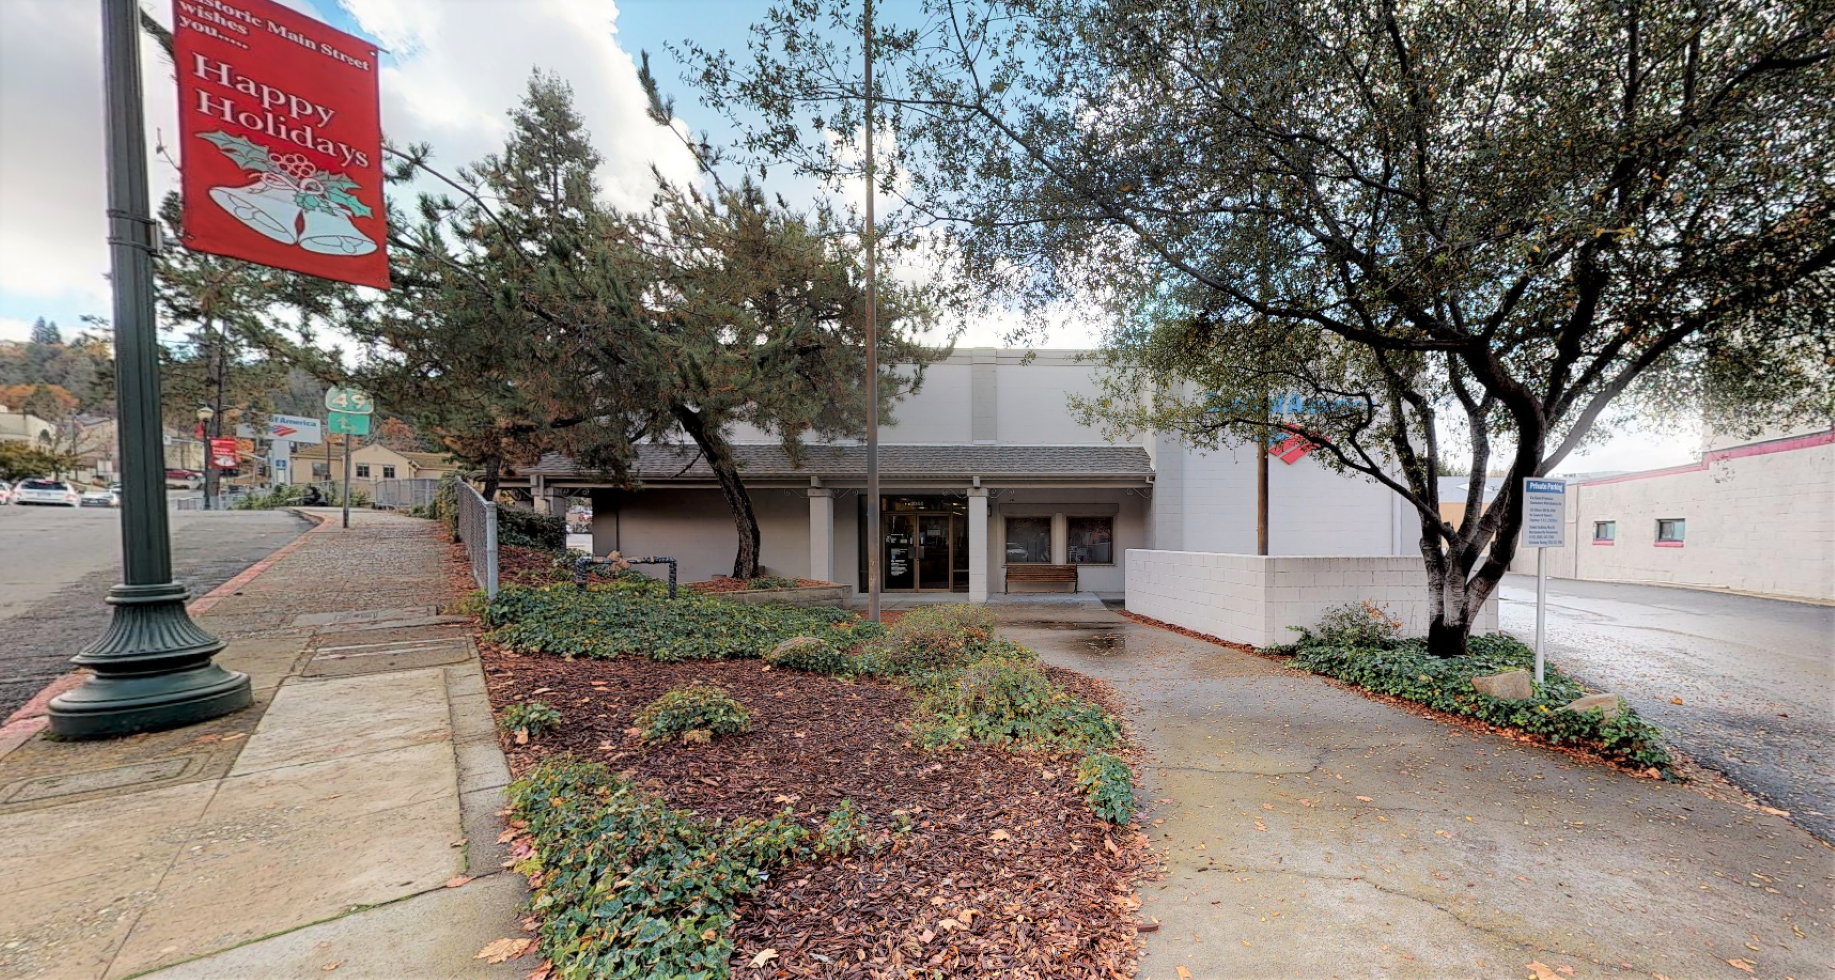 Bank of America financial center with walk-up ATM | 3044 Sacramento St, Placerville, CA 95667